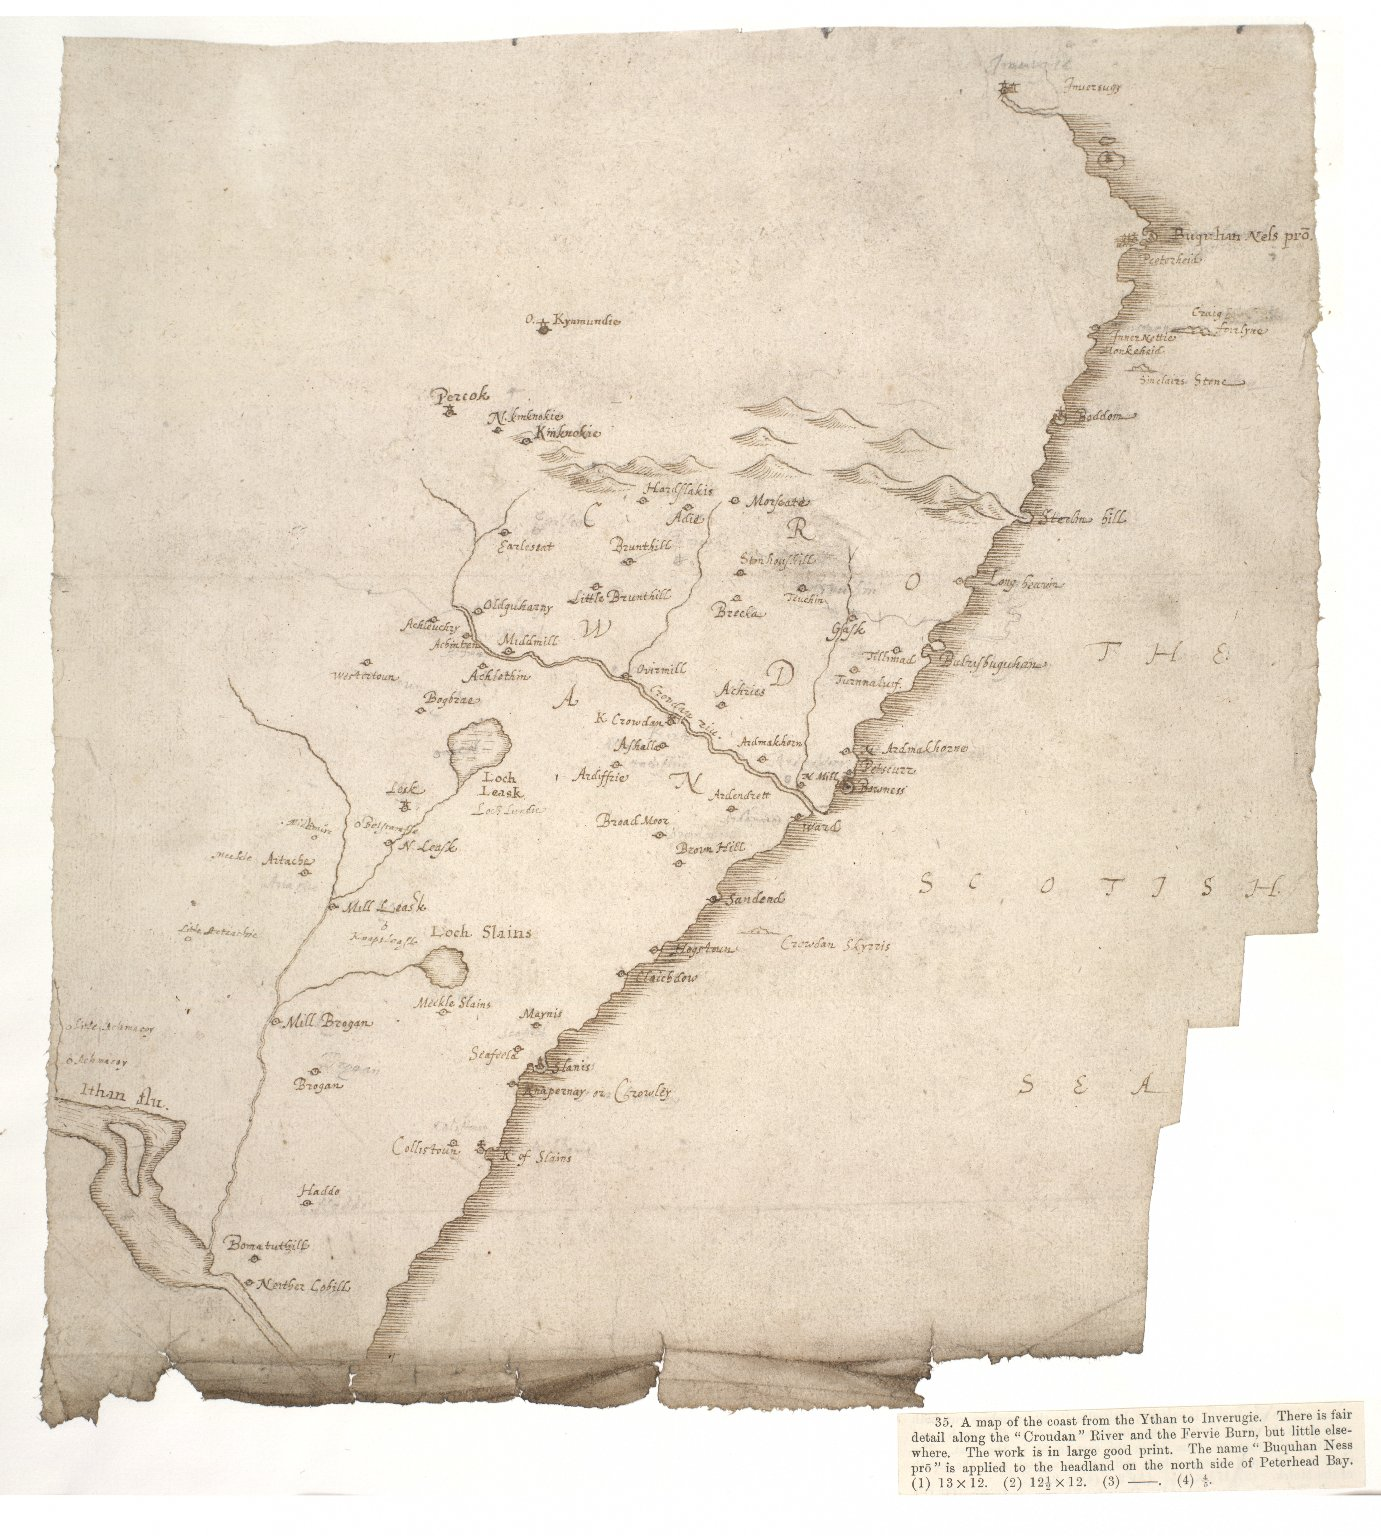 [A map of the coast from the River Ythan to Inverugie] [1 of 1]